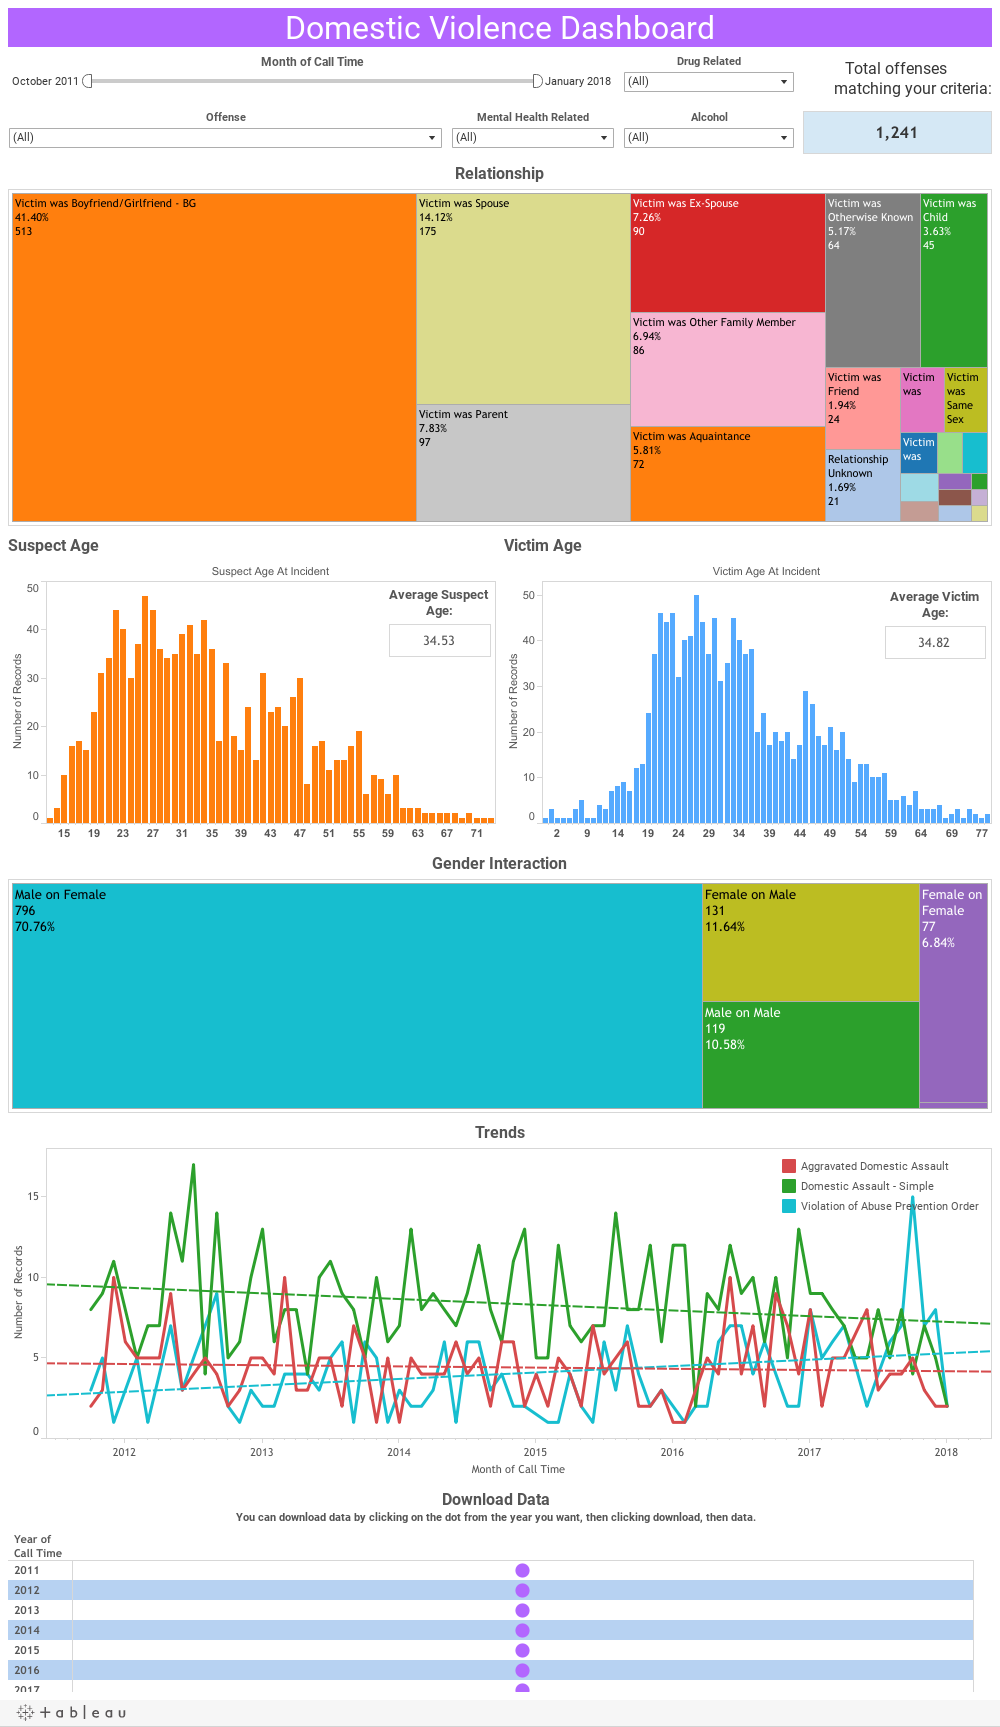 Domestic Violence Dashboard